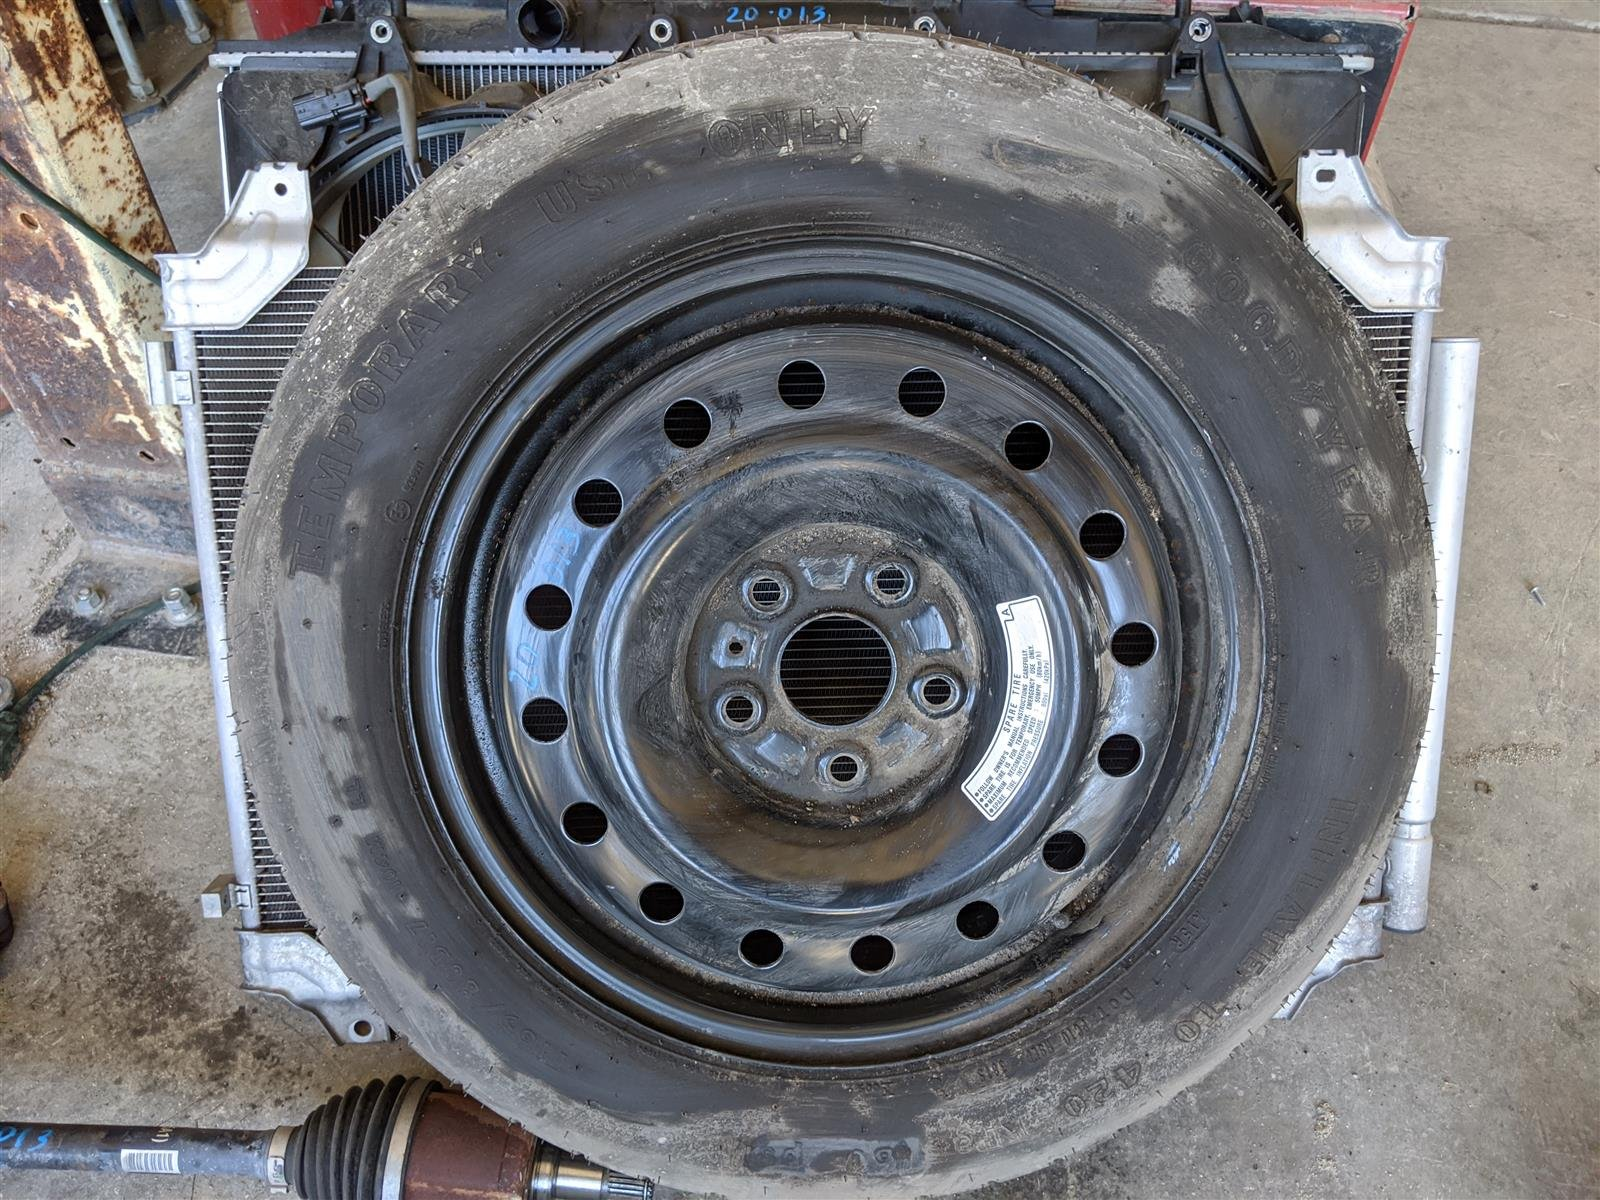 2016 Honda Pilot 17 Inch Spare Rim And Tire Replacement